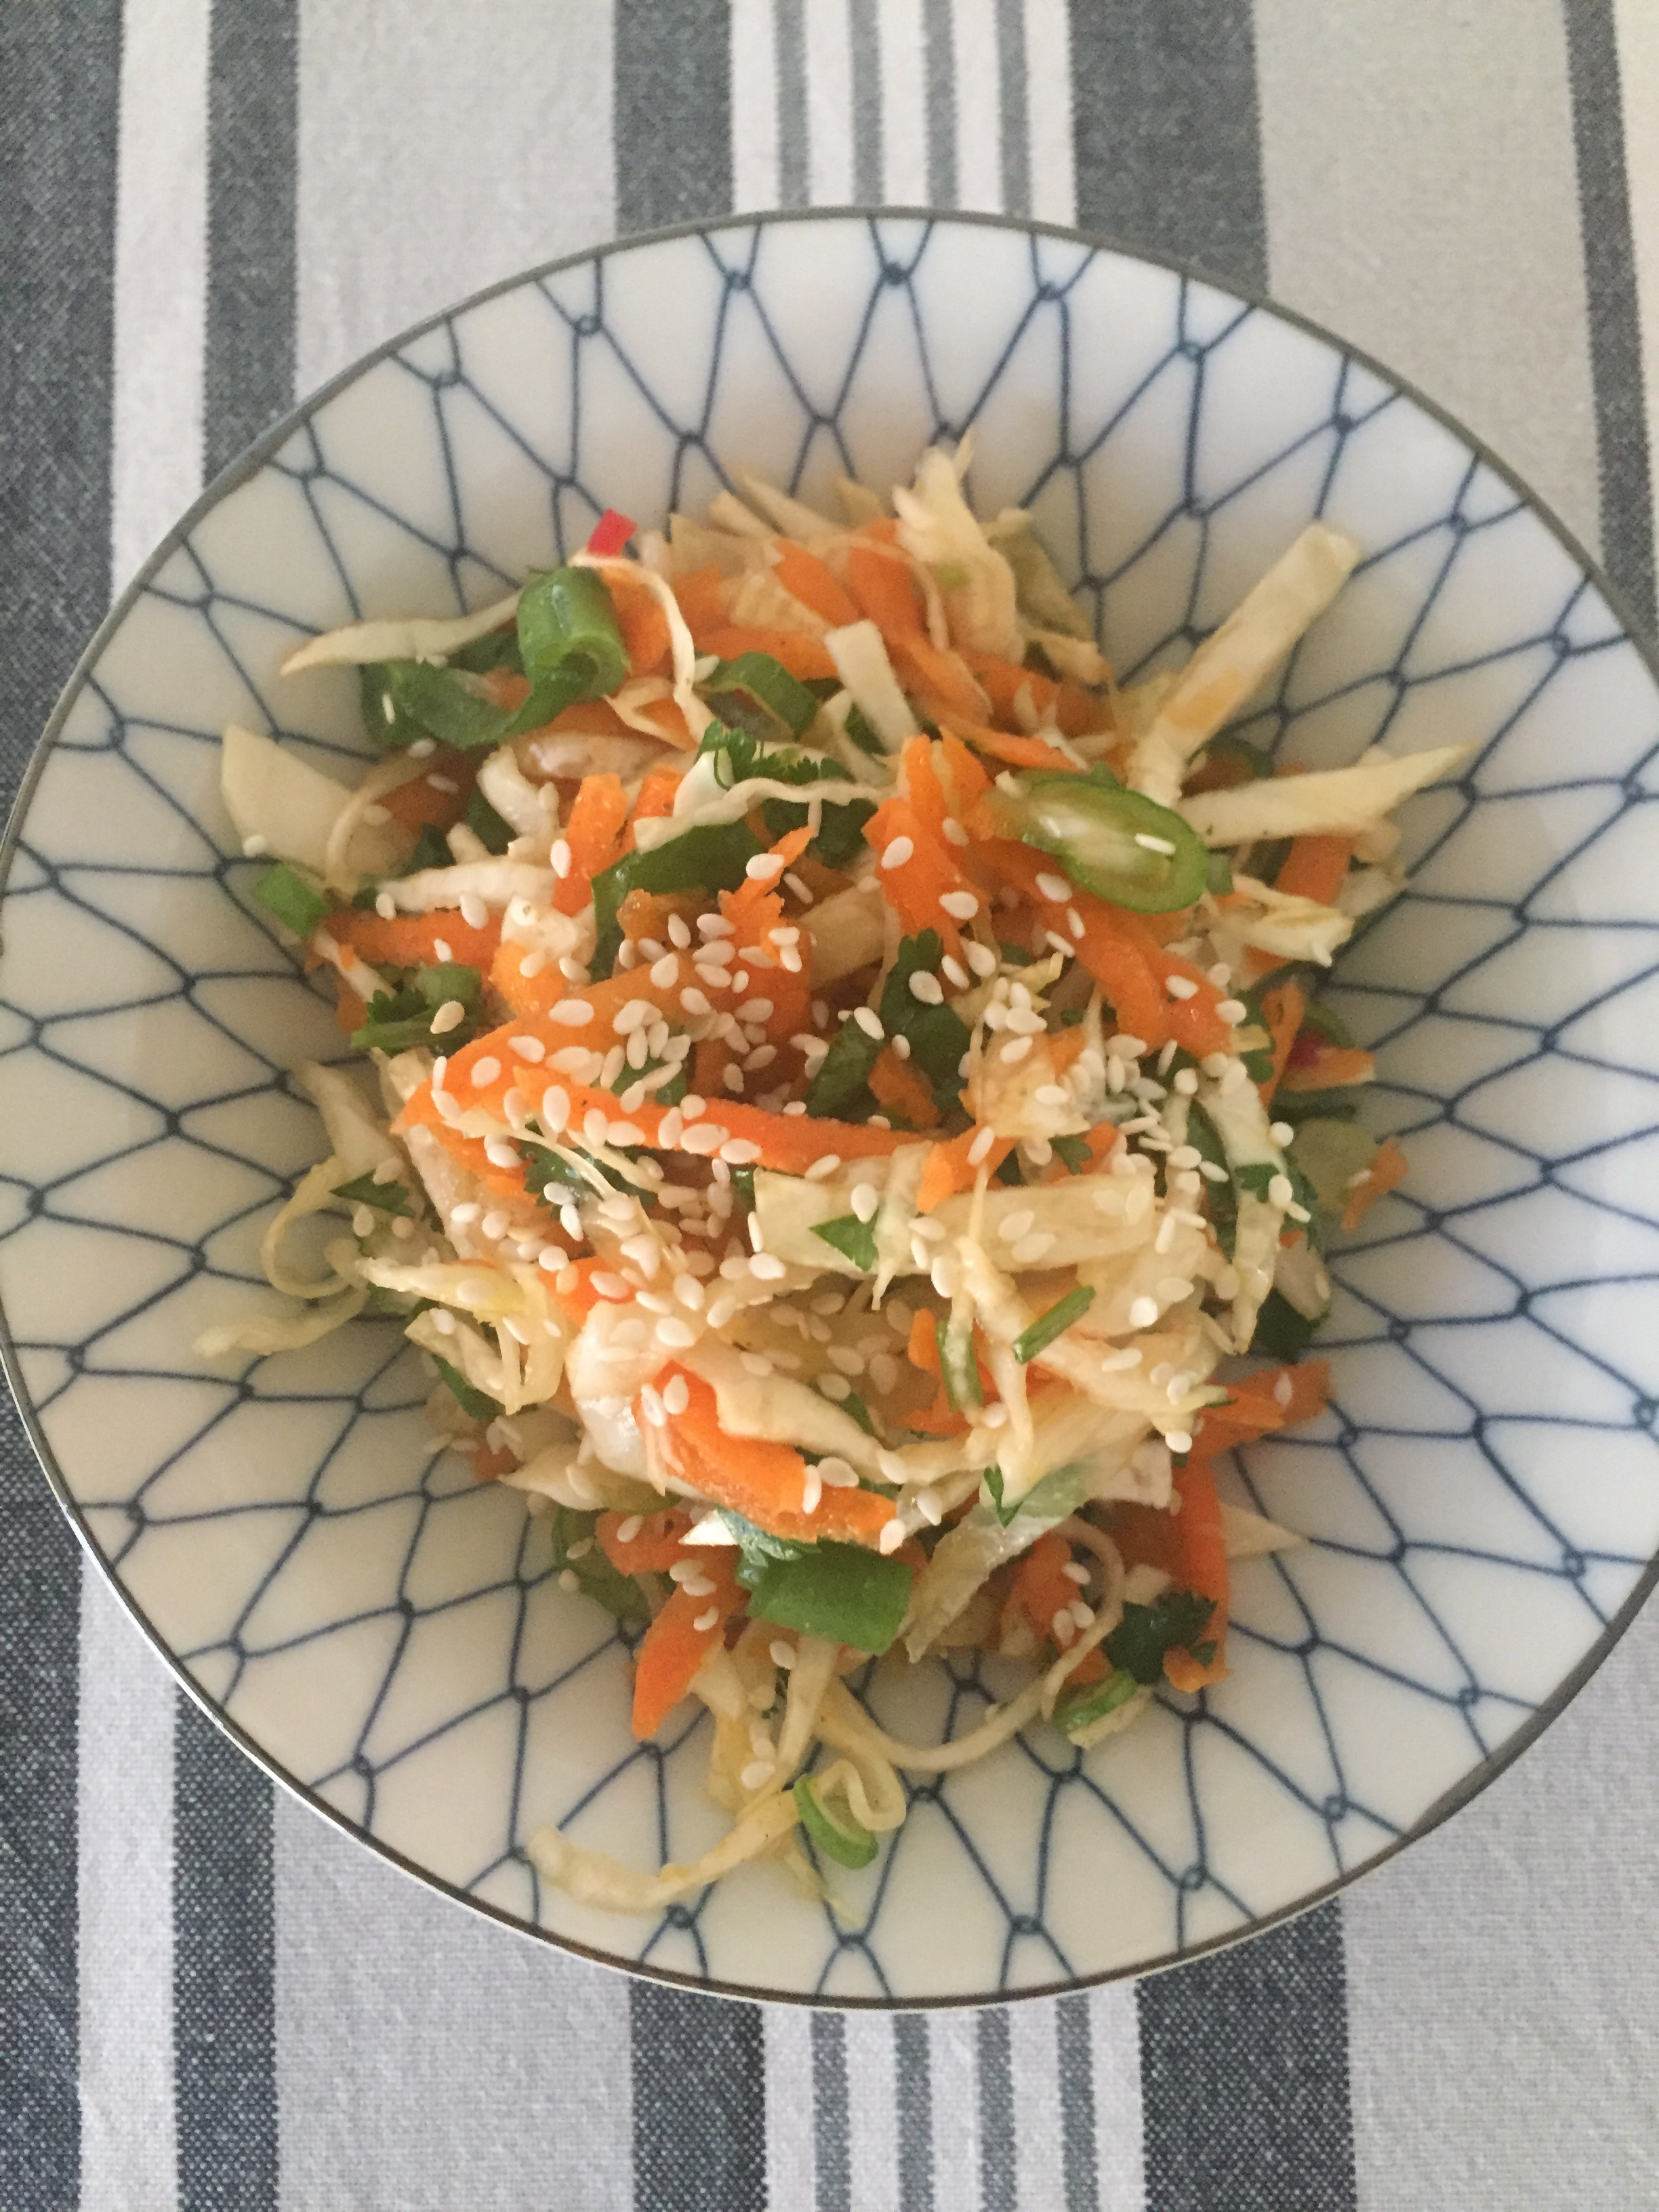 Asian coleslaw for our first official spring BBQ - recipe on the website